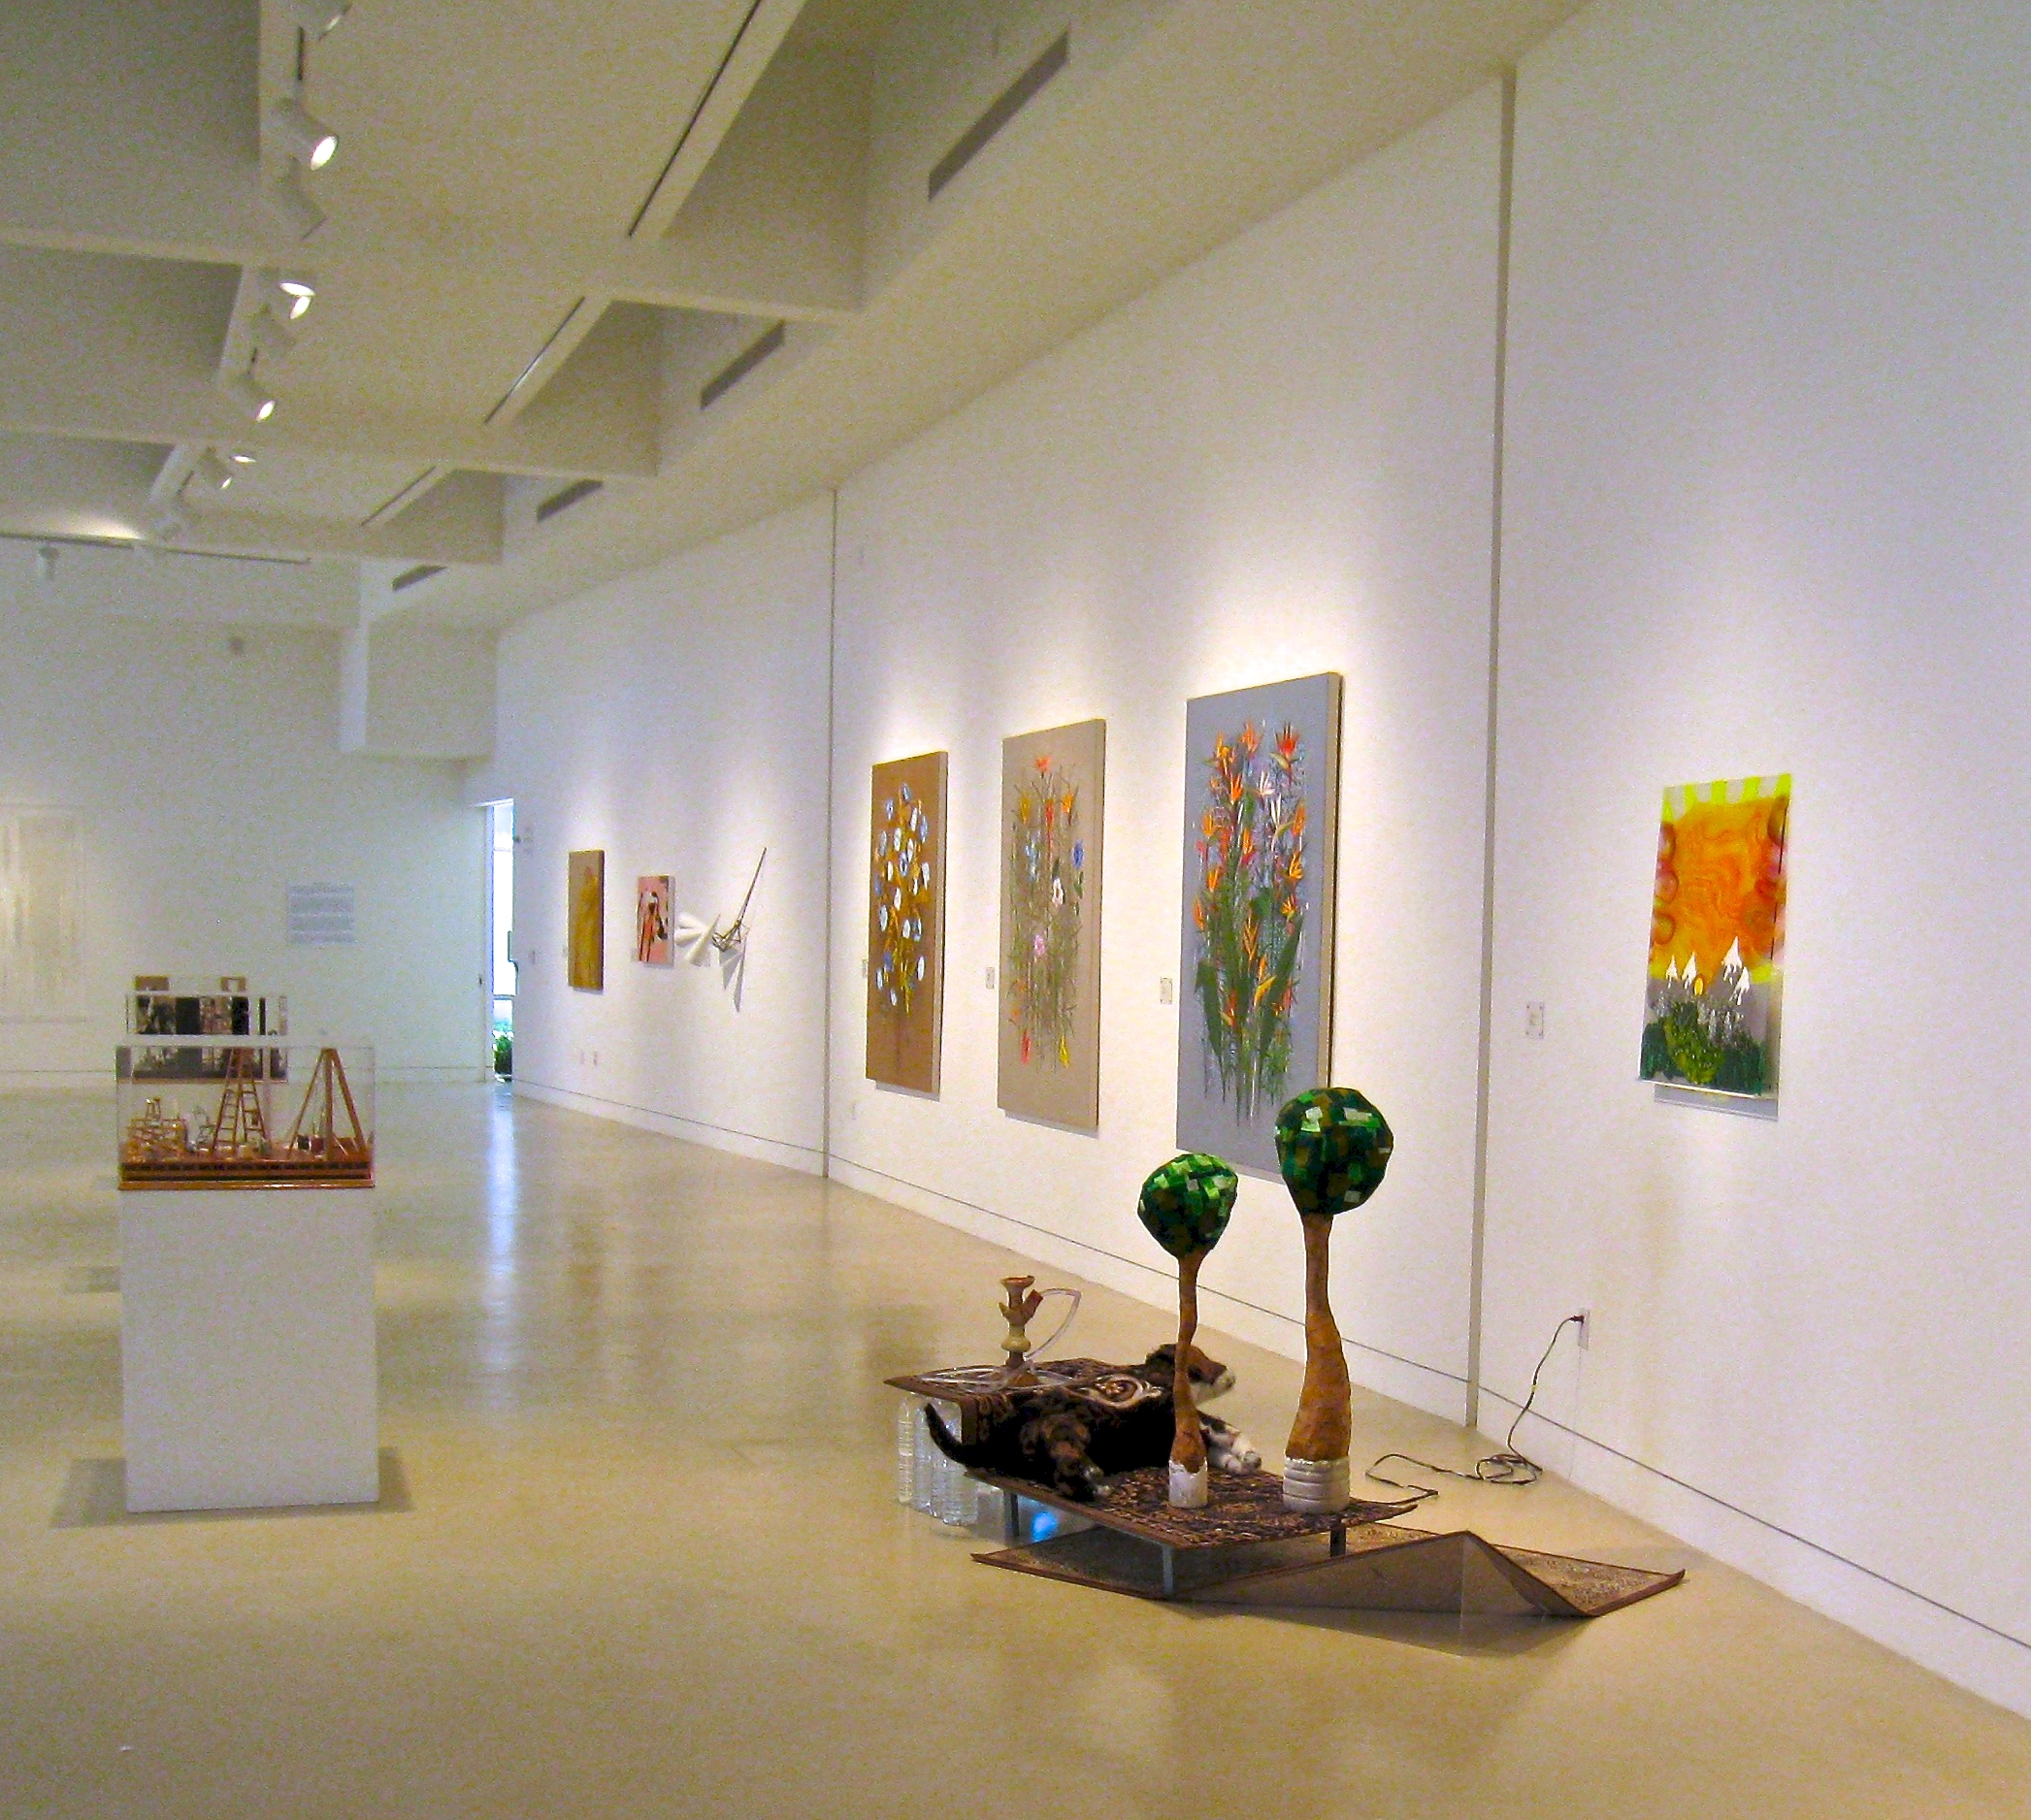 Subliminal Rapture Rug,	2010 installation views, Torrence Art Museum